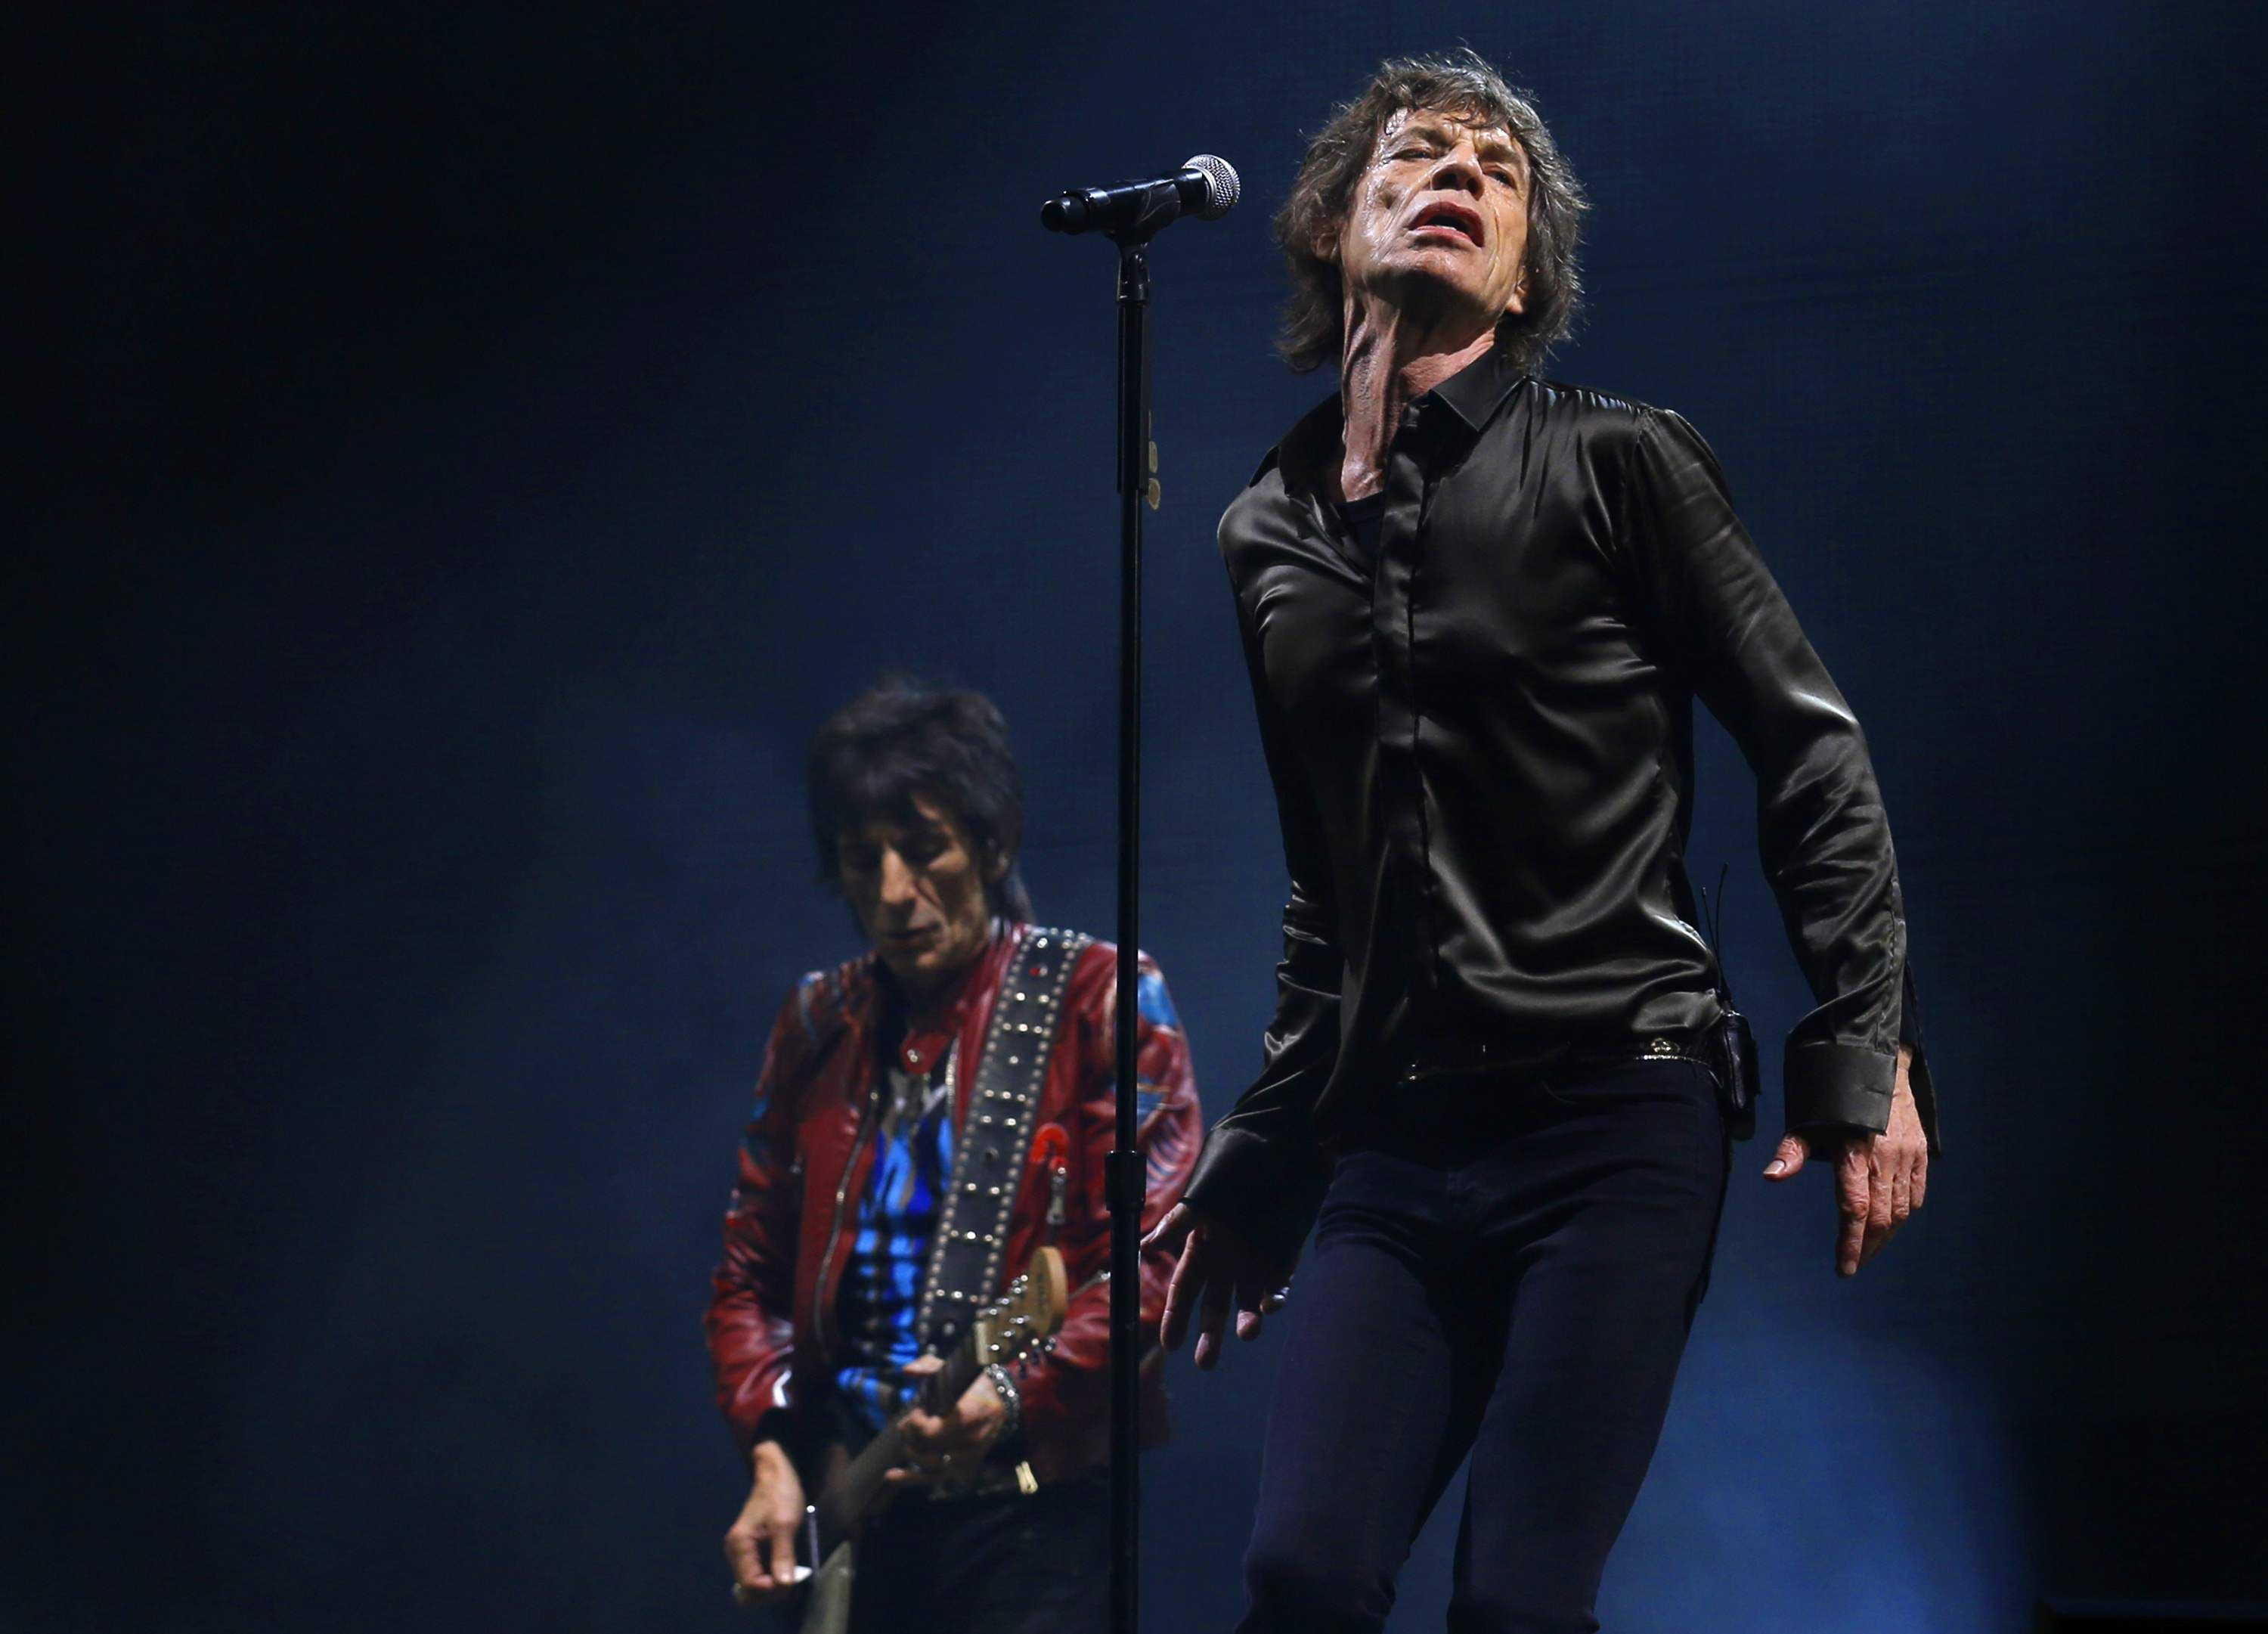 Ronnie Woods and Mick Jagger of the Rolling Stones perform on the Pyramid Stage at Glastonbury music festival at Worthy Farm in Somerset on June 29 TENS OF thousands of revellers watched the Rolling Stones make an energetic Glastonbury festival debut on Saturday (June 29) after half a century in the music business.